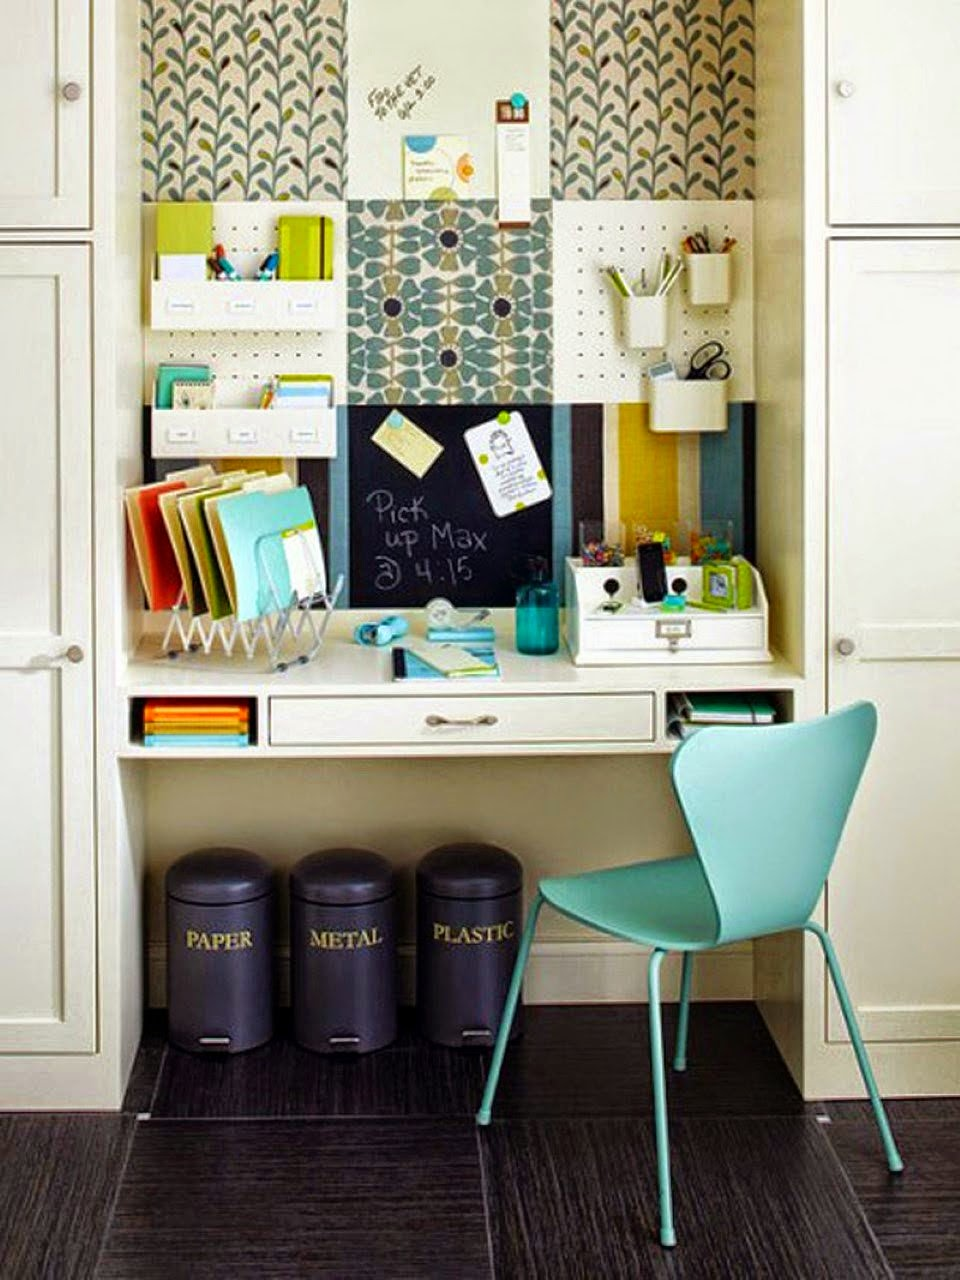 Tasty Minimalist Modern Home Office Design Ideas for Small Spaces